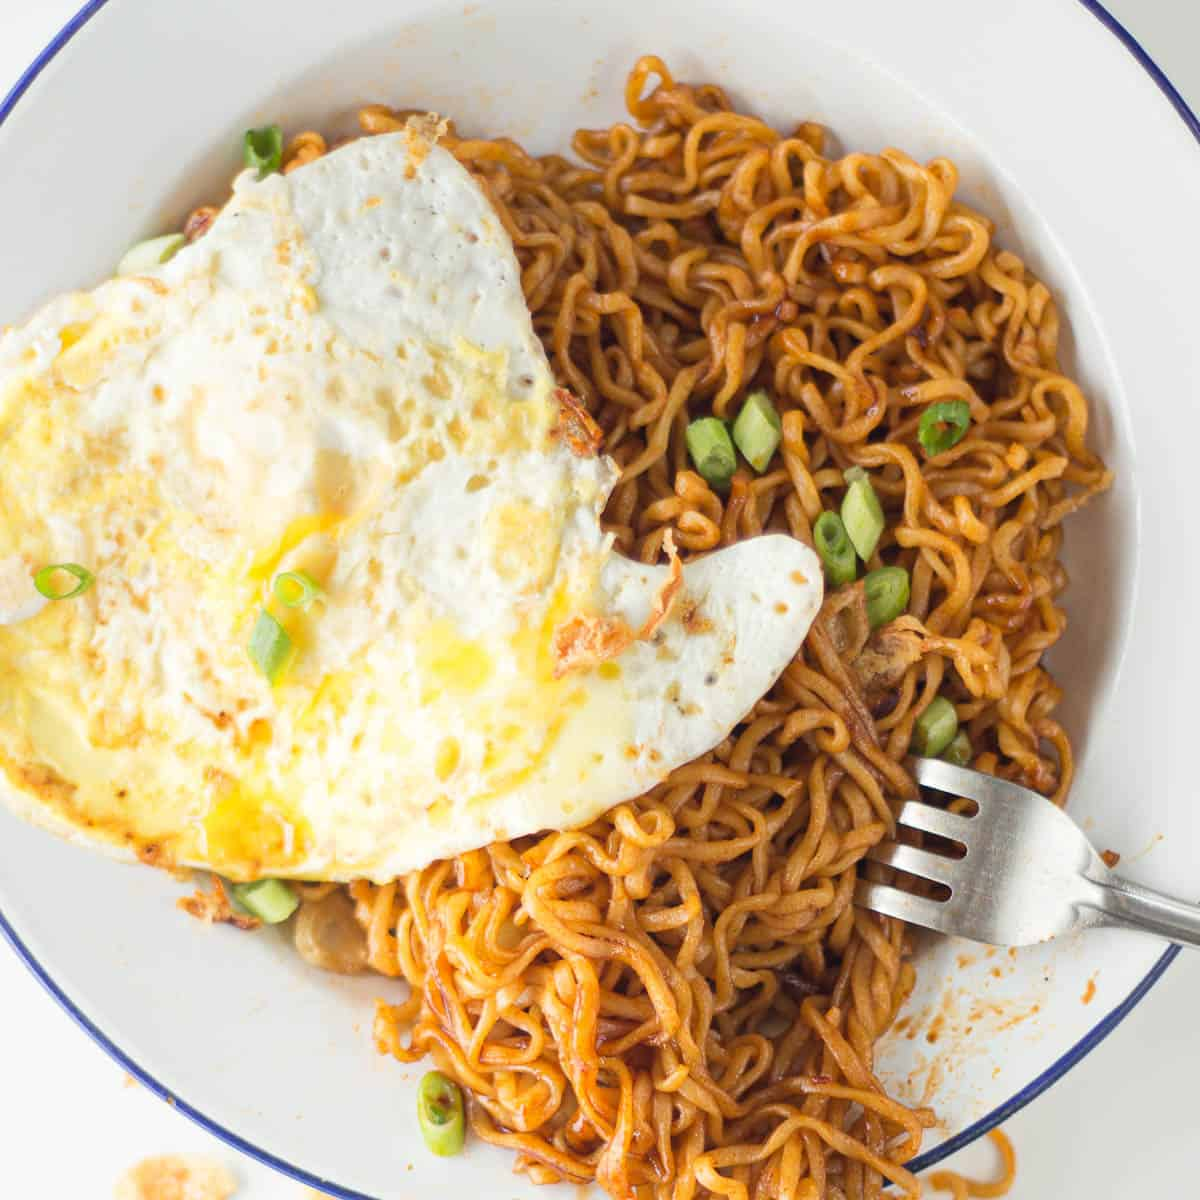 Pile of mie goreng noodles on a plate with a fried egg.